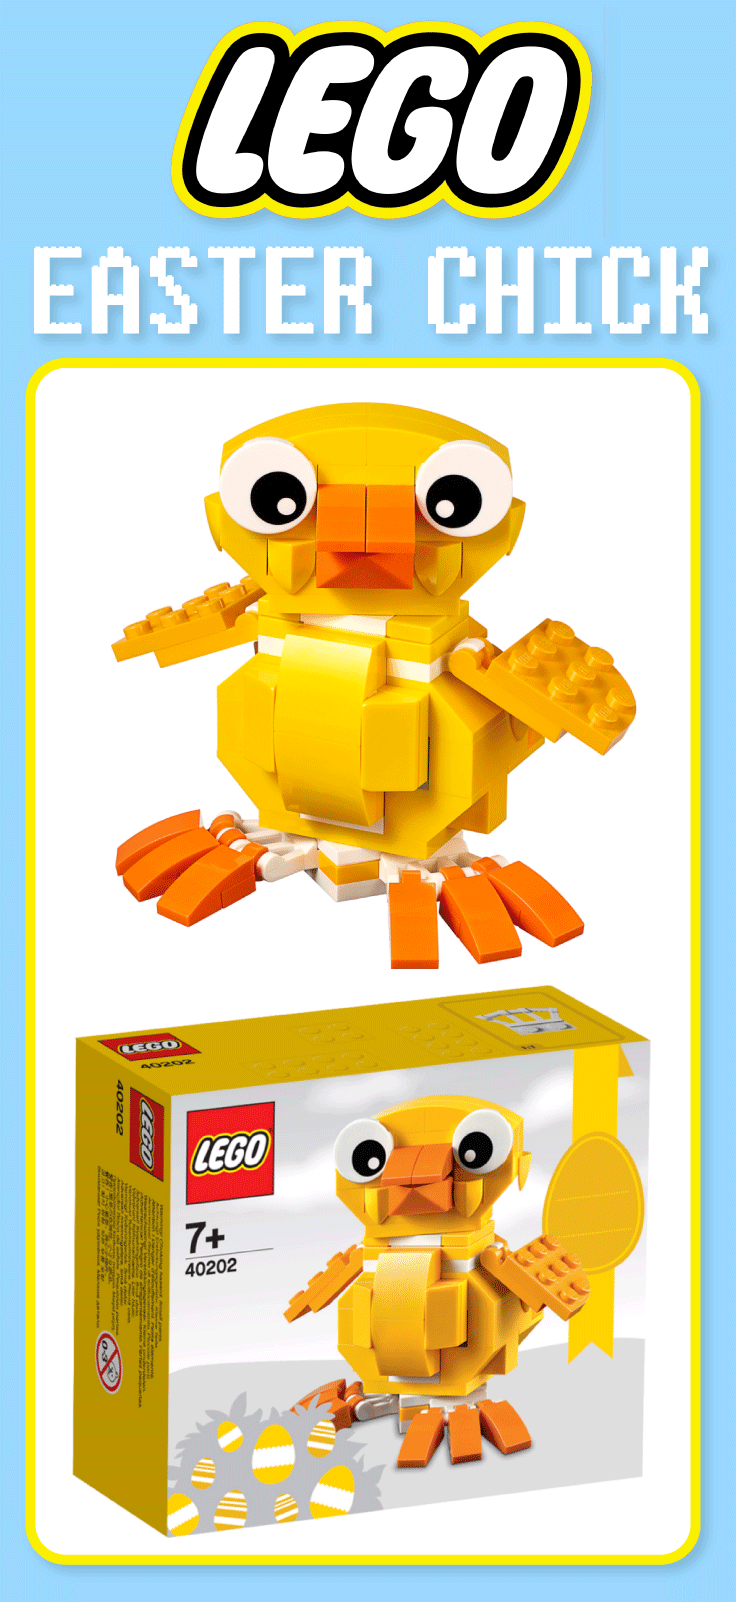 Lego easter chick 5 asda george chocolate easter eggs and easter if youre looking for an alternative to a chocolate easter egg for the kids this year then this lego easter chick is a super gift and we expect this to se negle Image collections